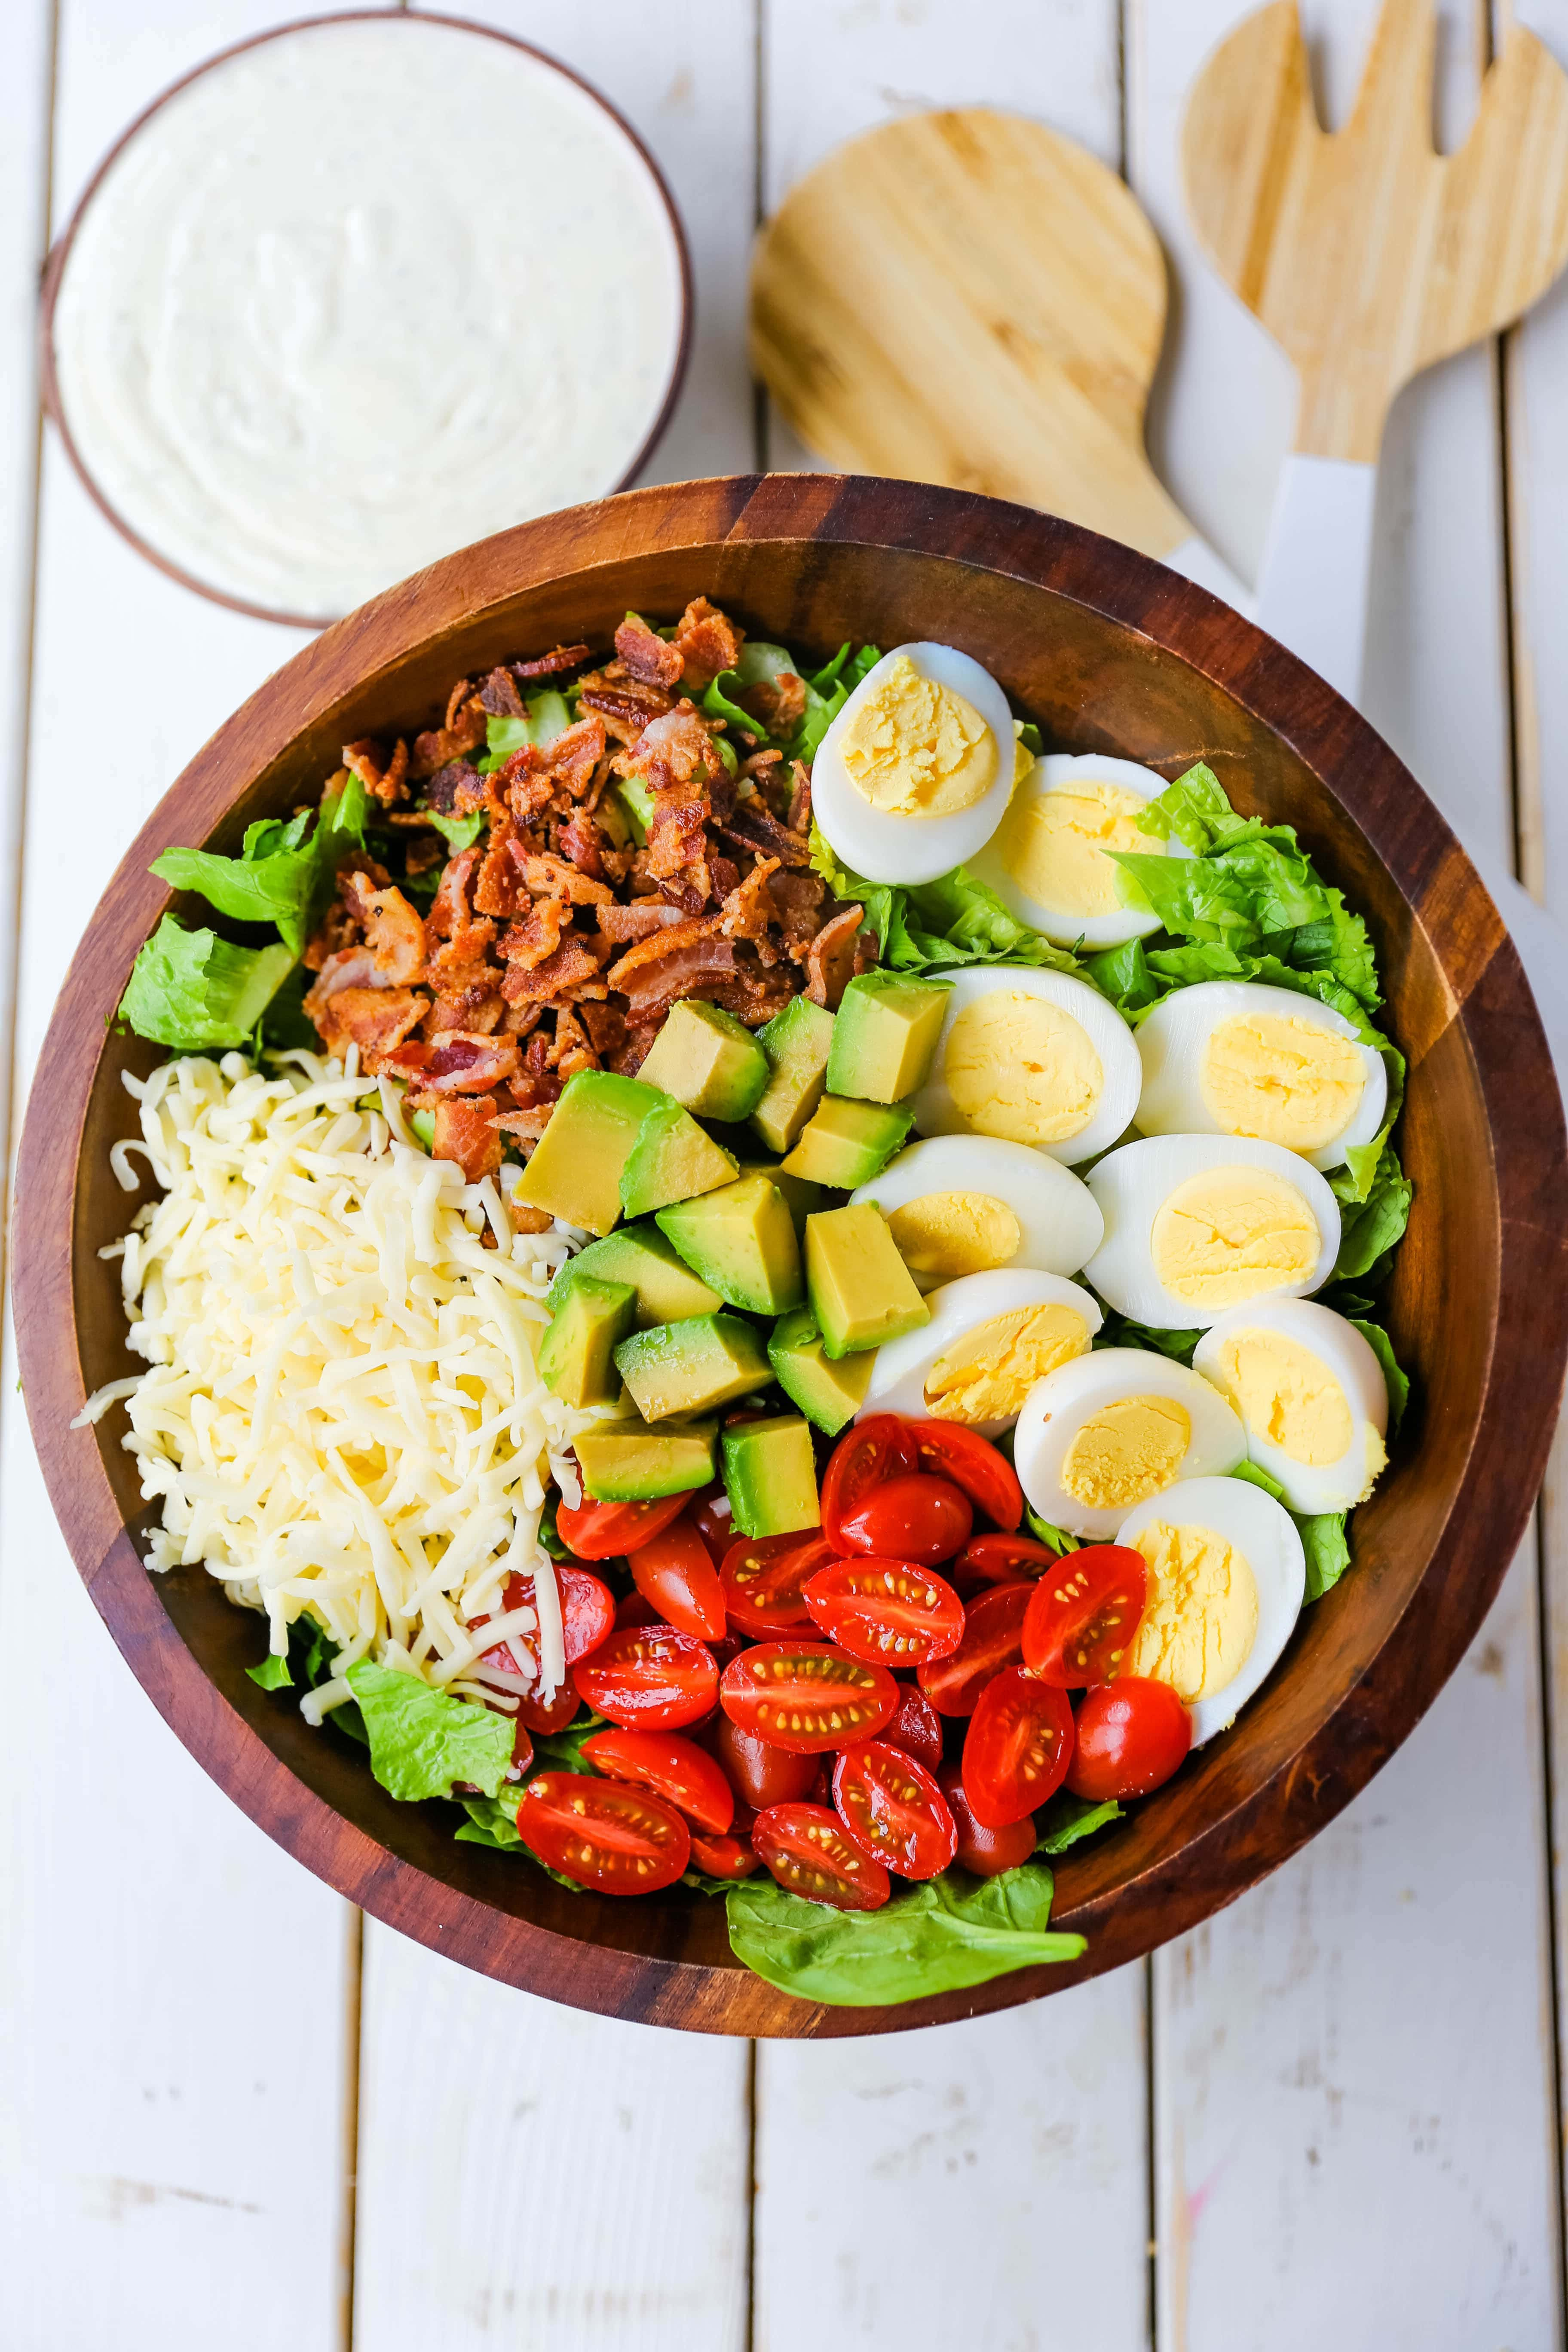 Cobb Salad made with romaine lettuce, crispy bacon, creamy avocado, juicy tomato, egg, Monterey Jack cheese, tossed in homemade Ranch dressing. www.modernhoney.com #salad #cobbsalad #salads